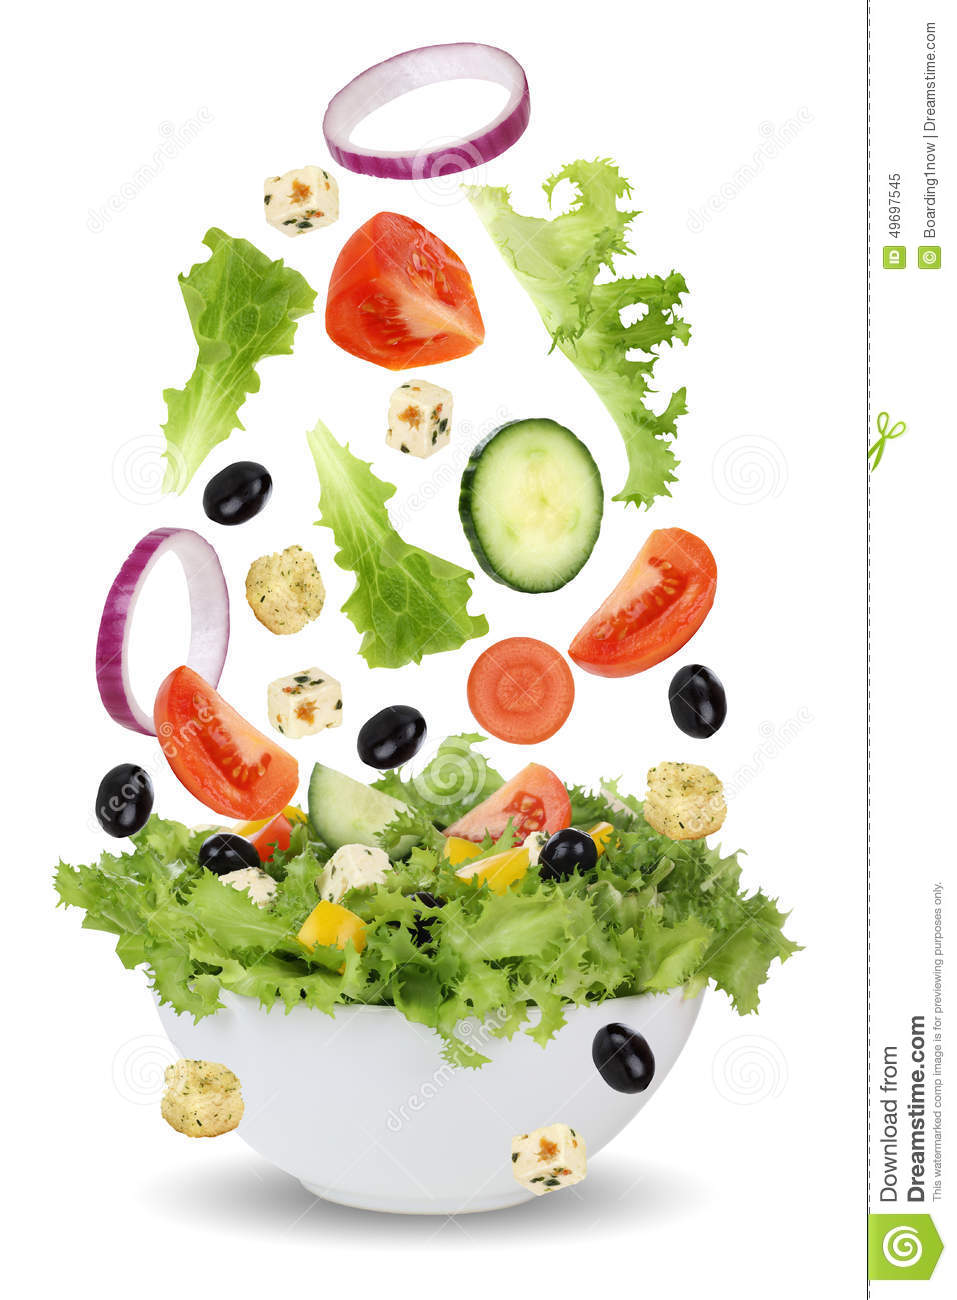 Falling Salad In Bowl With Lettuce Tomatoes Onion And